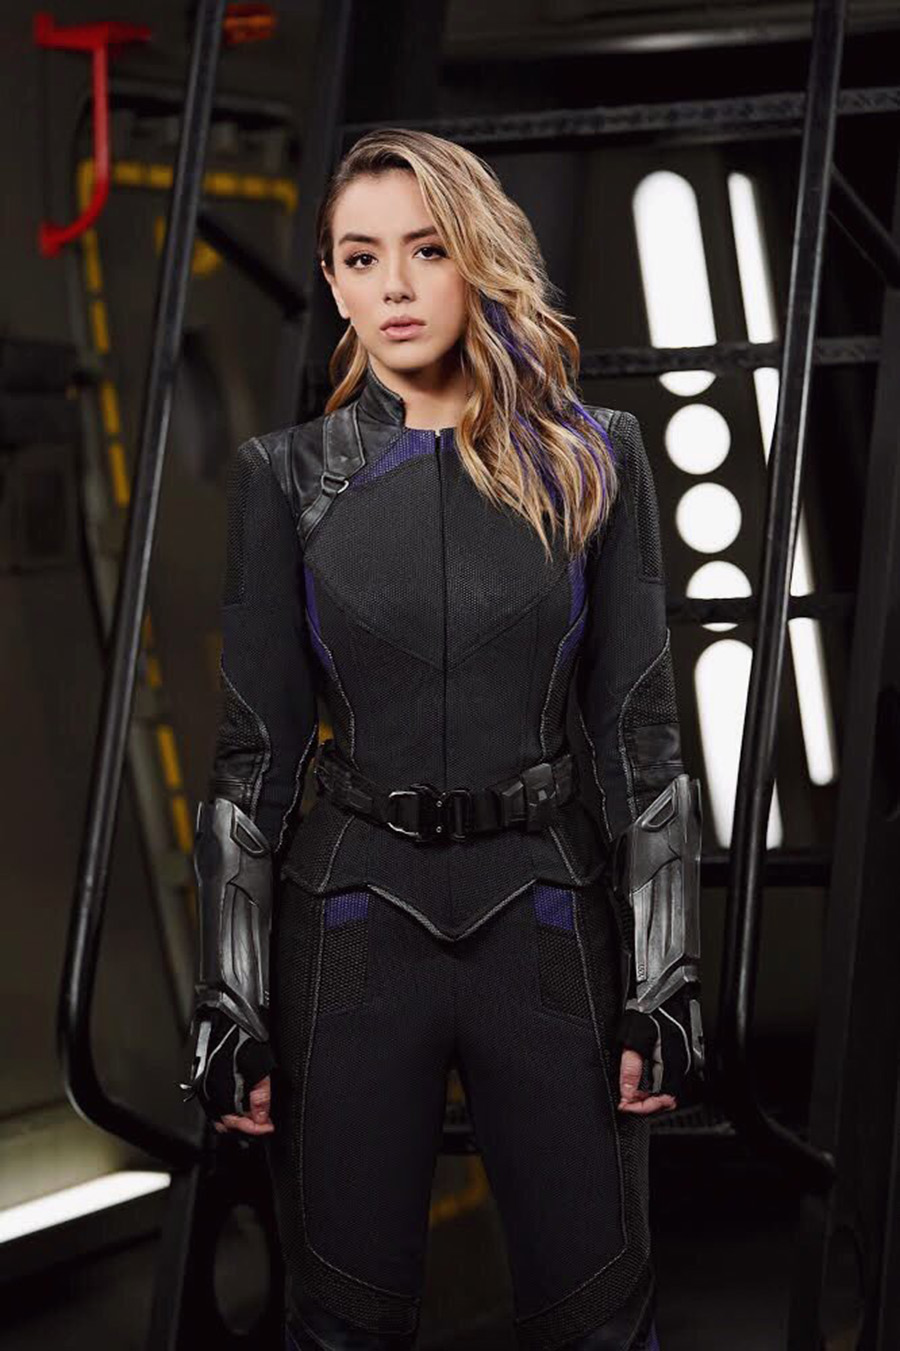 Chloe Bennet revela novo visual de Quake na 6ª temporada de Agents of SHIELD 6e195639b3